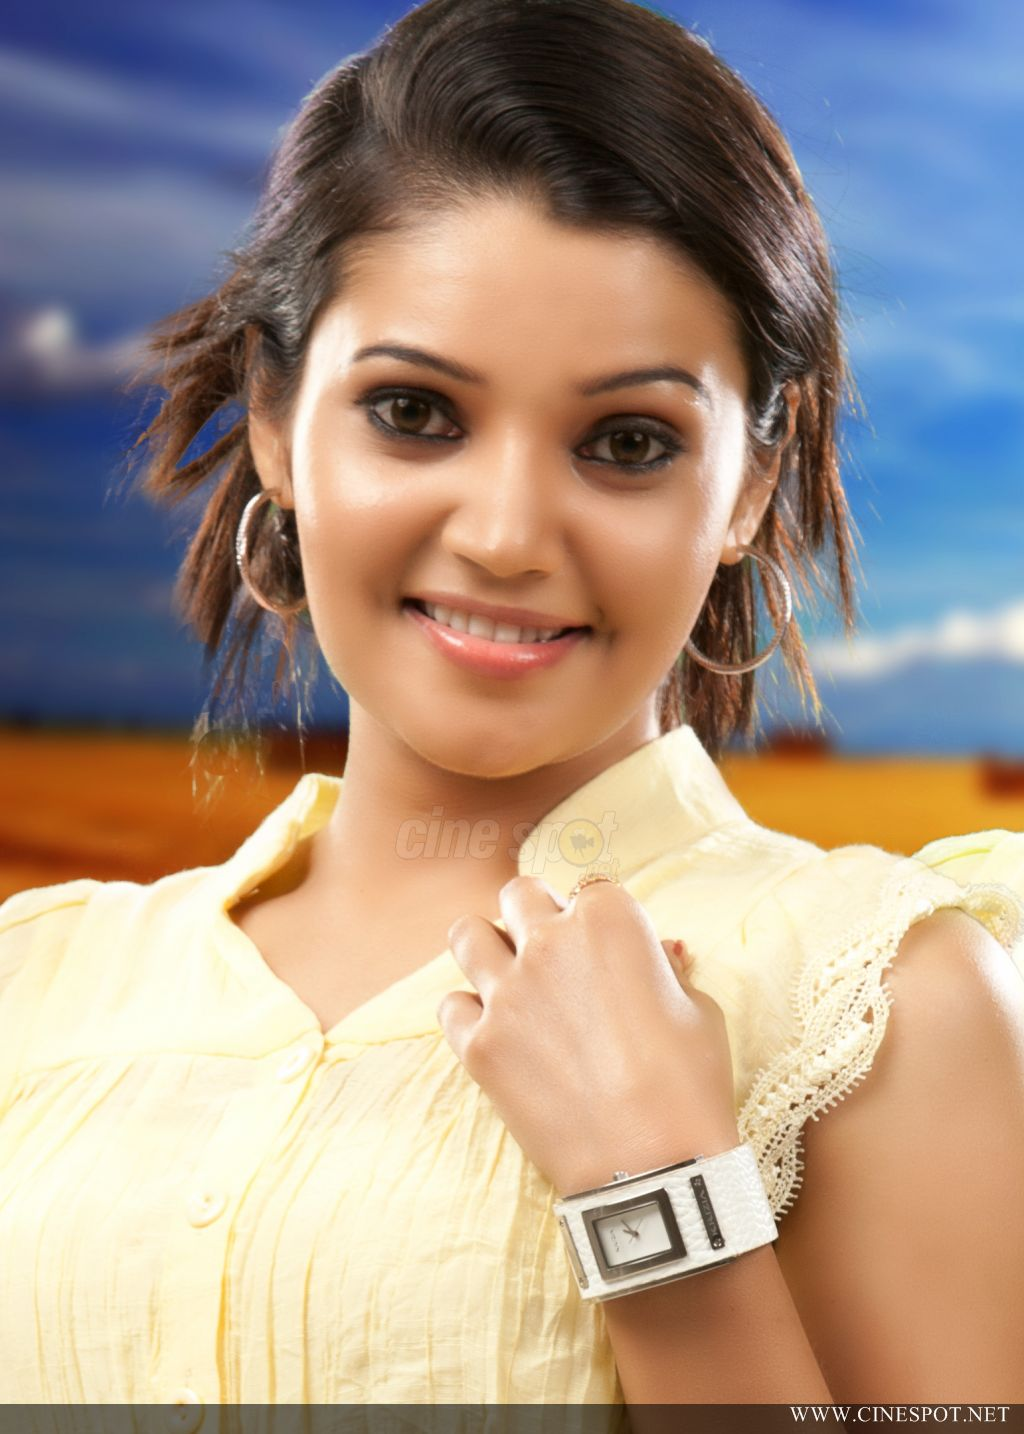 New mallu photos